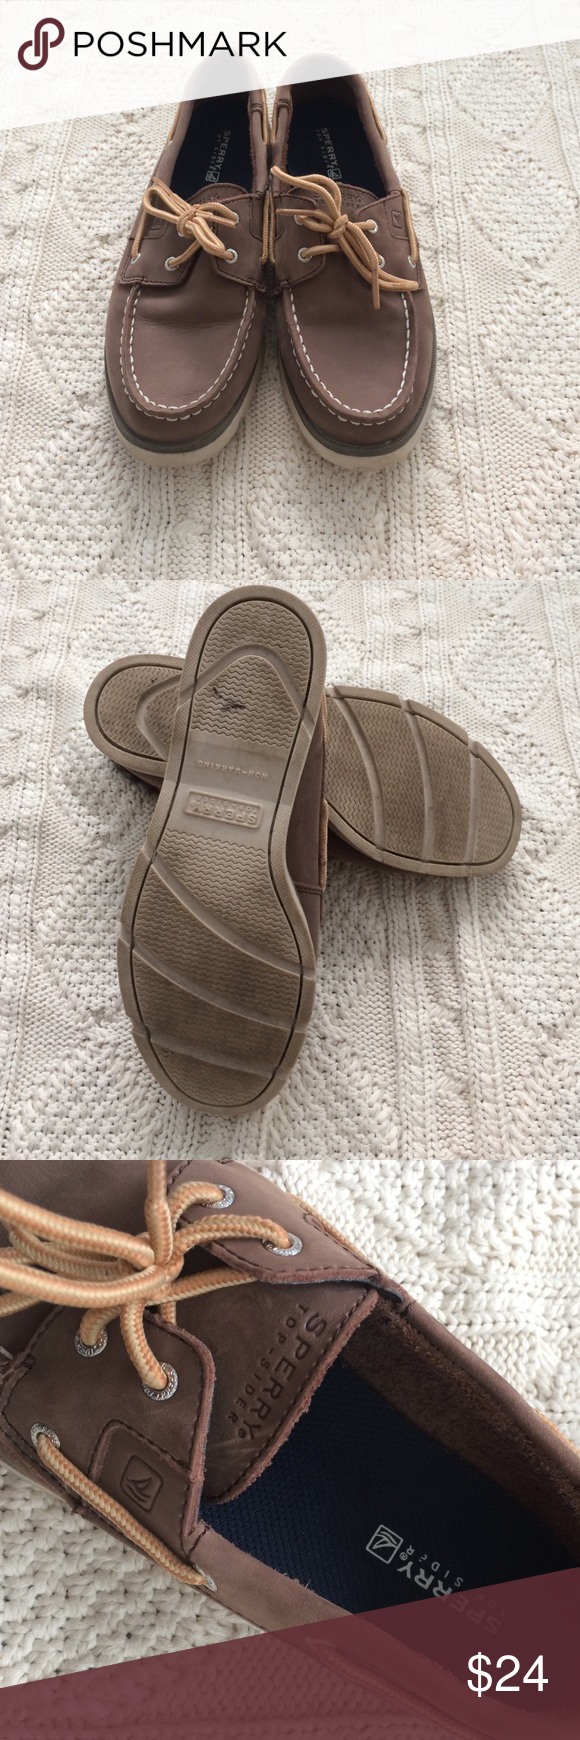 Sperry Top Sider boy's leeward boat shoe Excellent condition. Minor dirt marks on the soles. Leather upper. Size 4M. Sperry Top-Sider Shoes